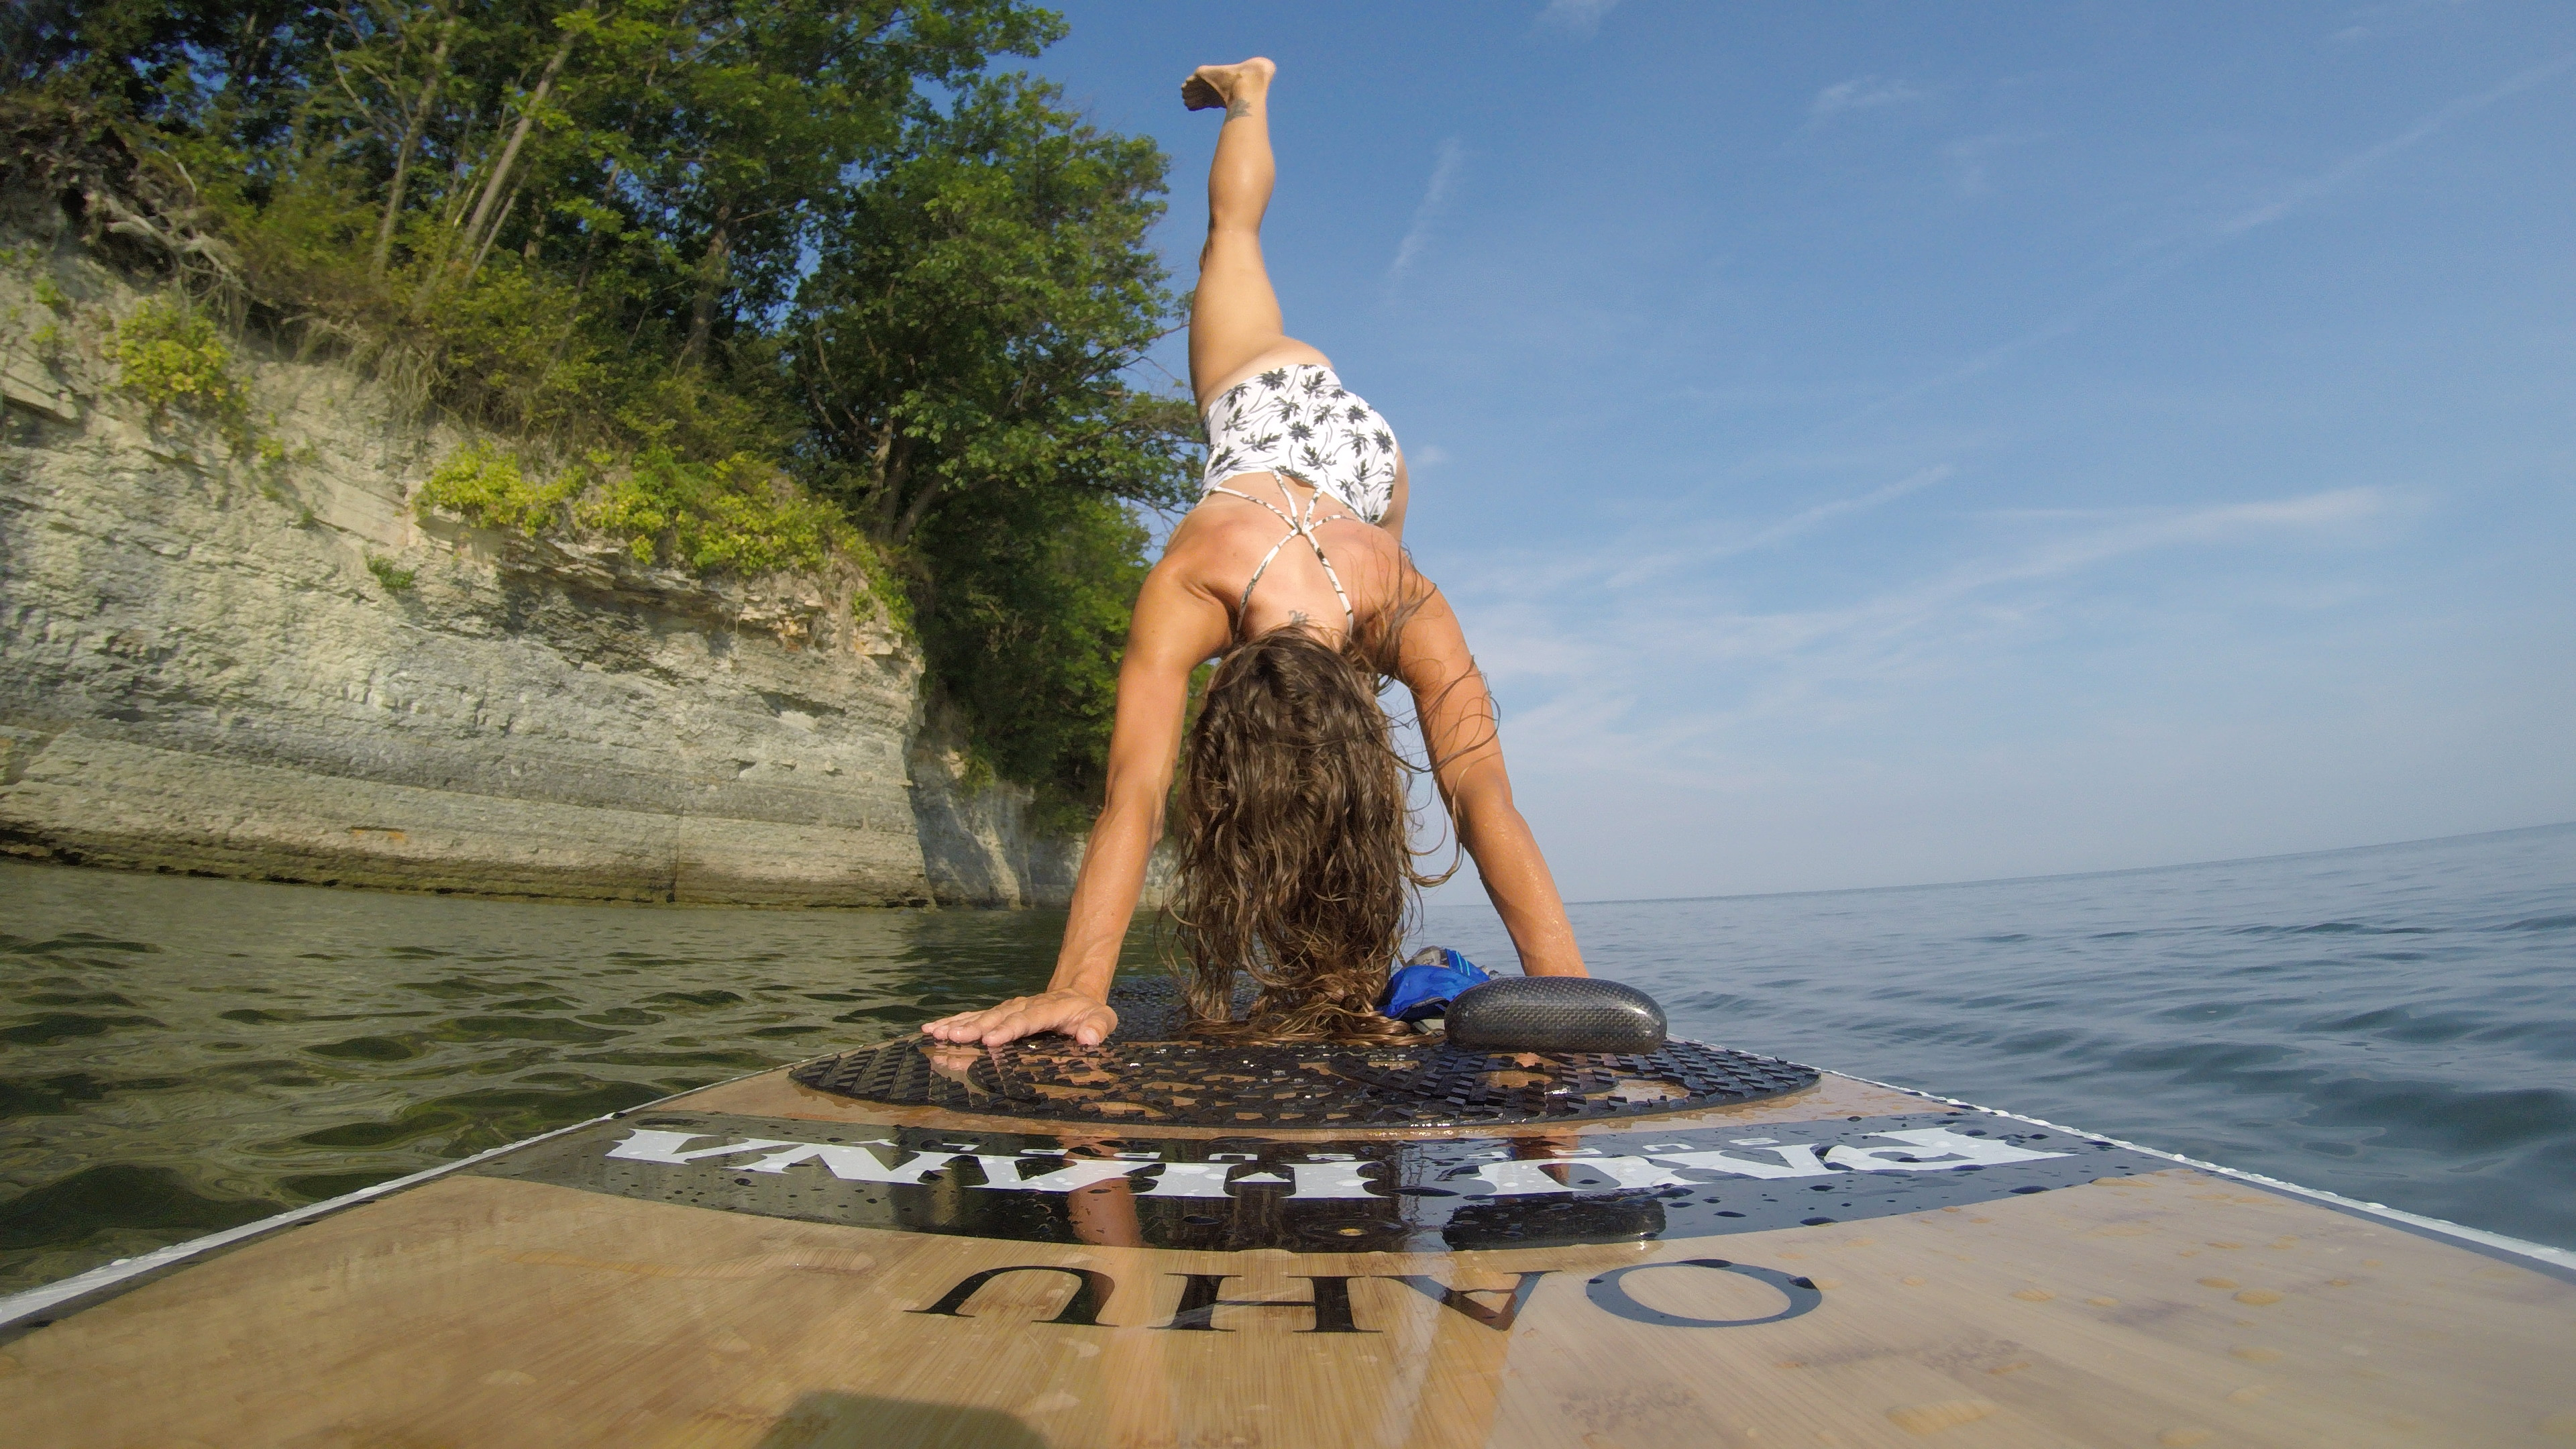 Yoga Poses on a SUP